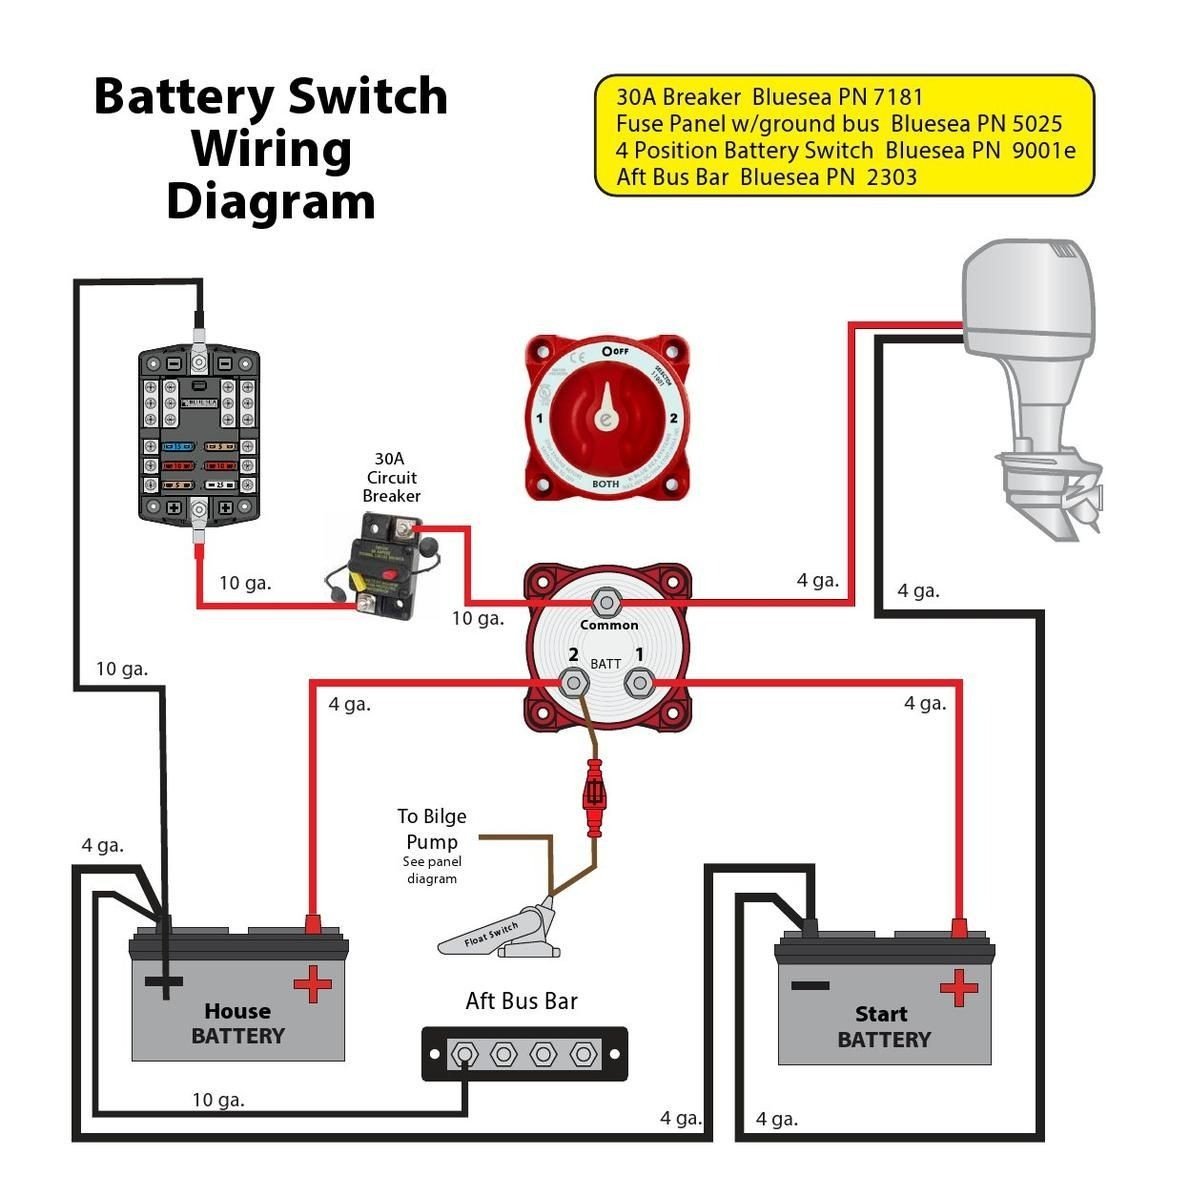 boat battery switch wiring diagram new switch wiring diagram best boat wiring diagram boat pinterest of boat battery switch wiring diagram reinell boat wiring diagram wiring diagram schematic name